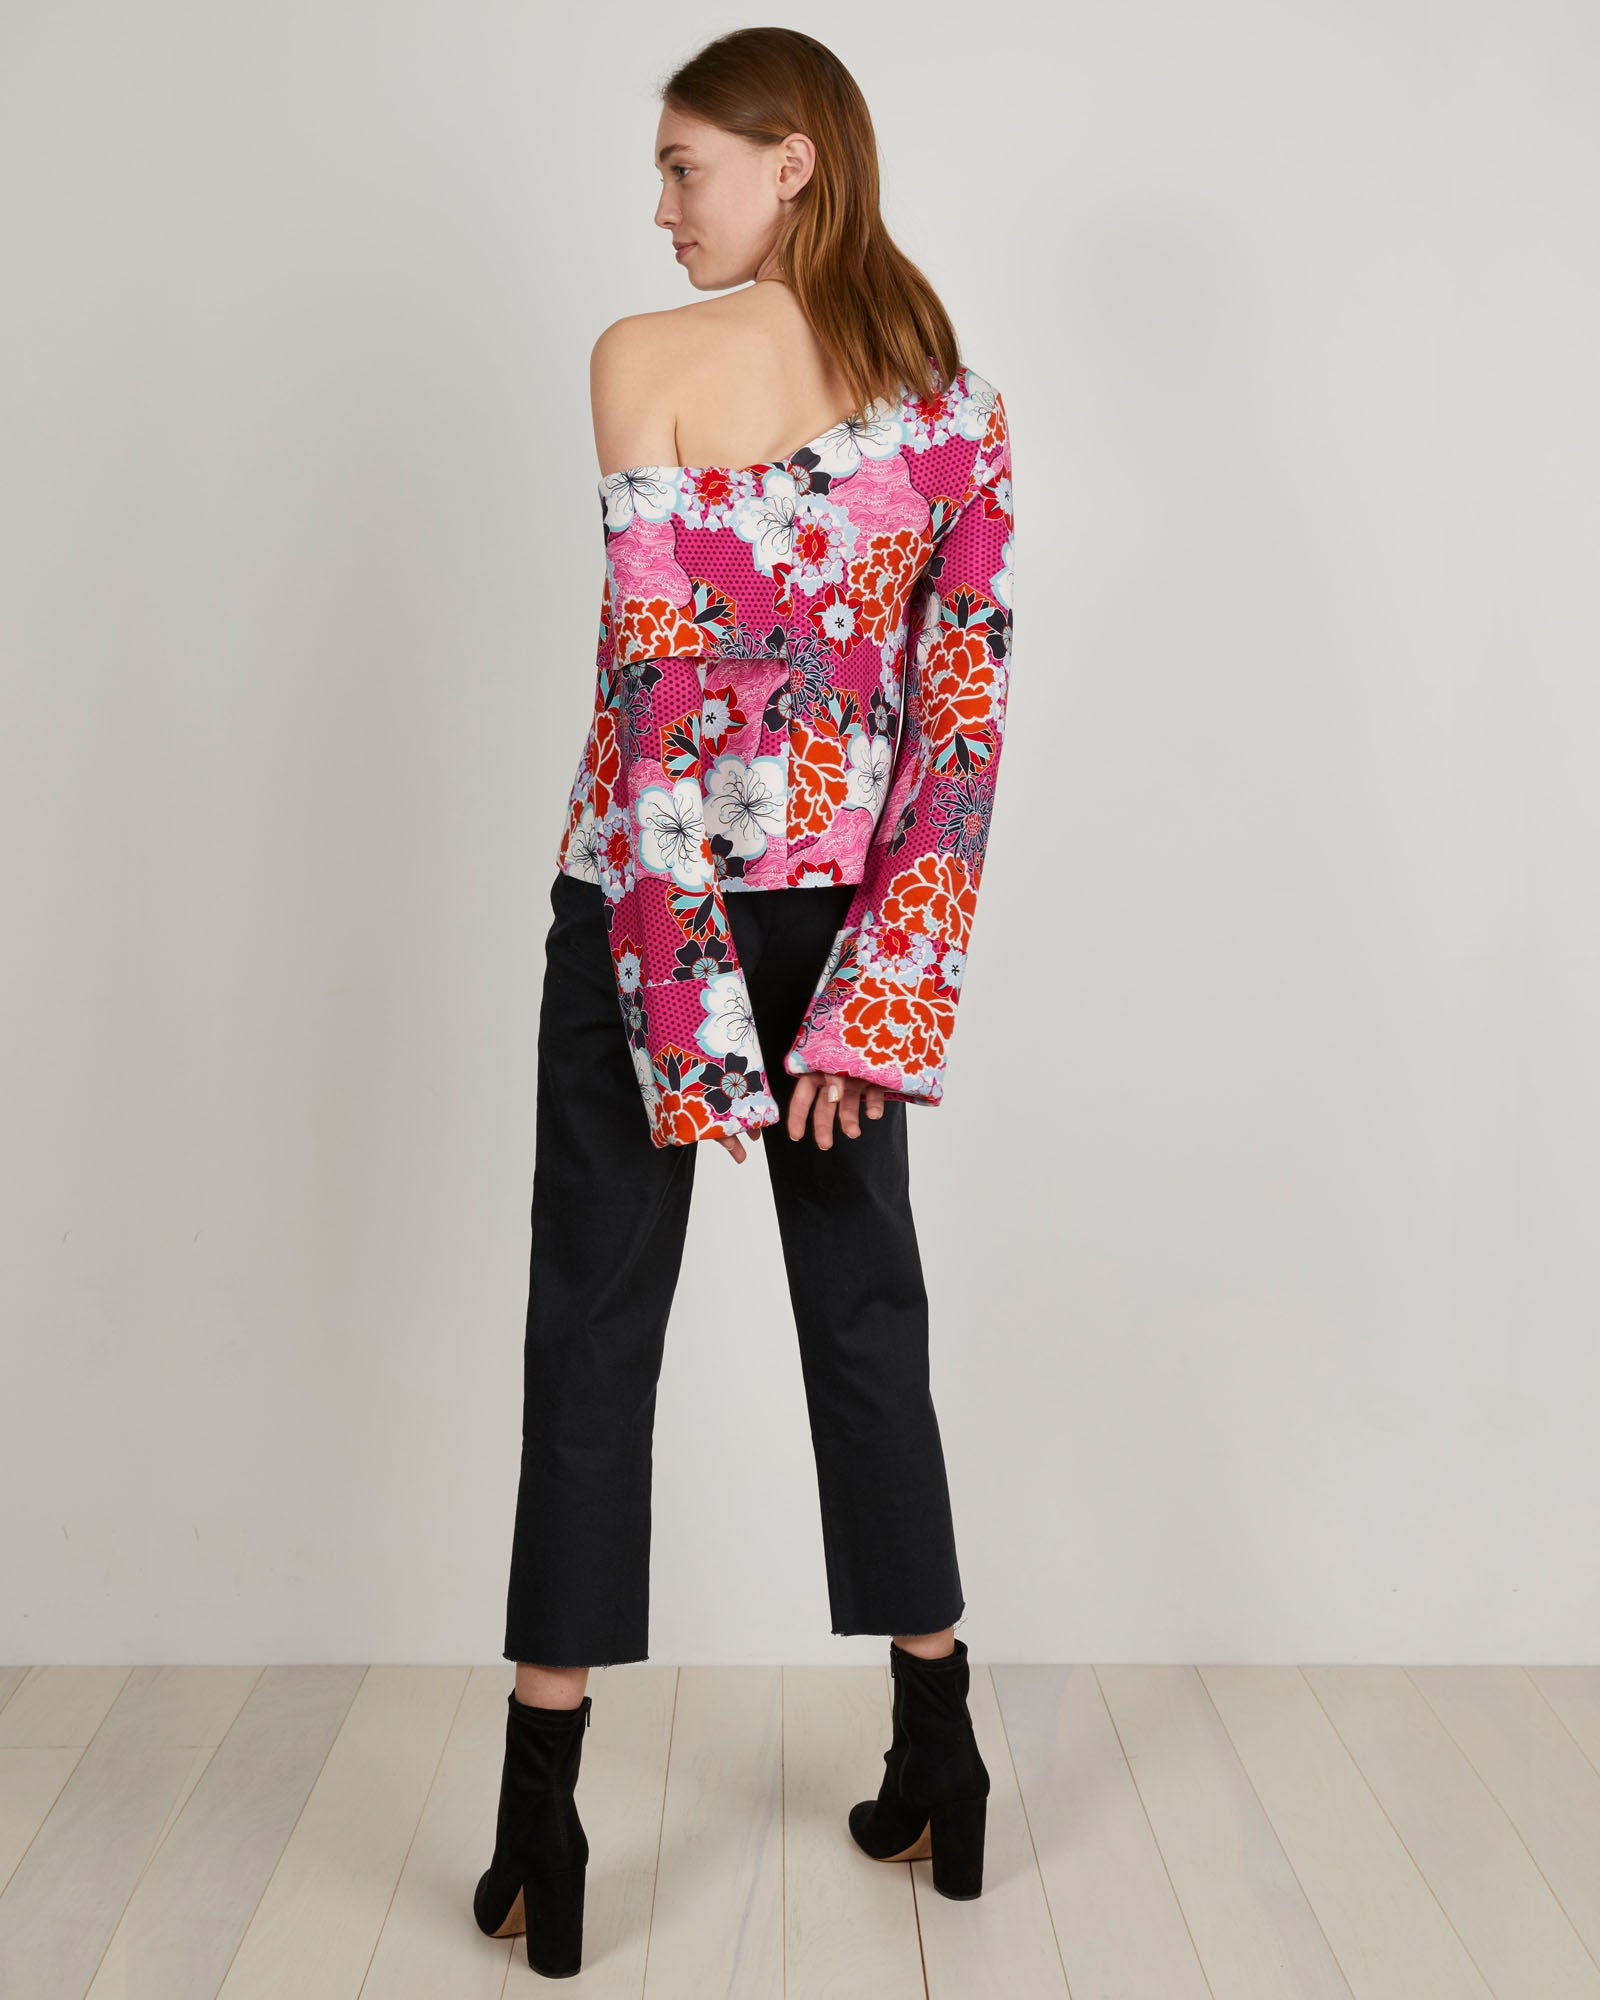 THE KIT's Logan Sweatshirt in a hot pink pop floral print has a relaxed off-the-shoulder fit and exaggerated sleeve cuffs